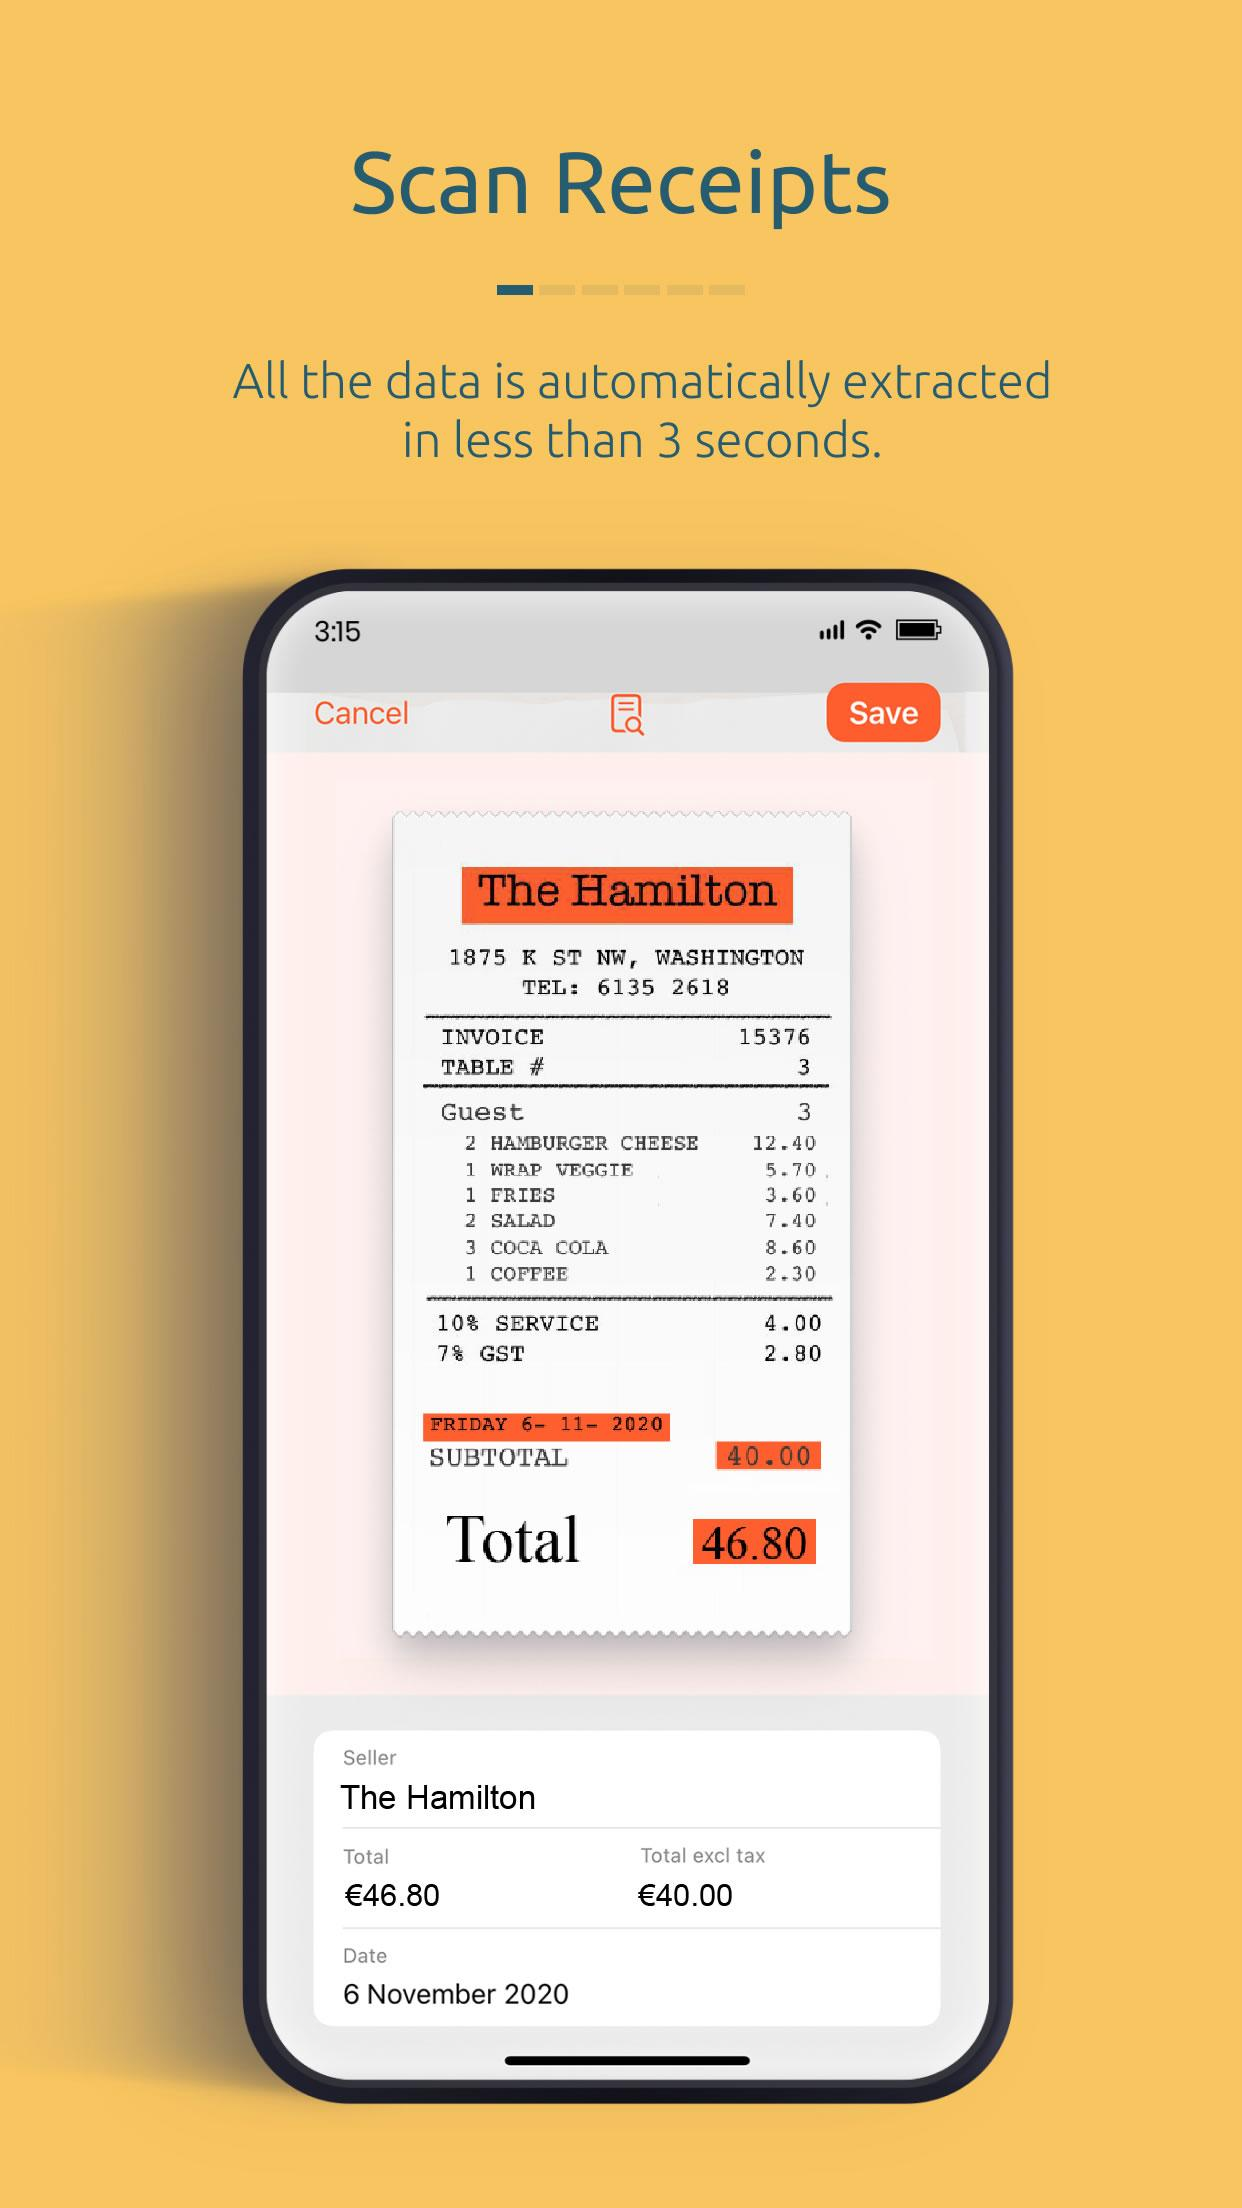 Easily scan receipts